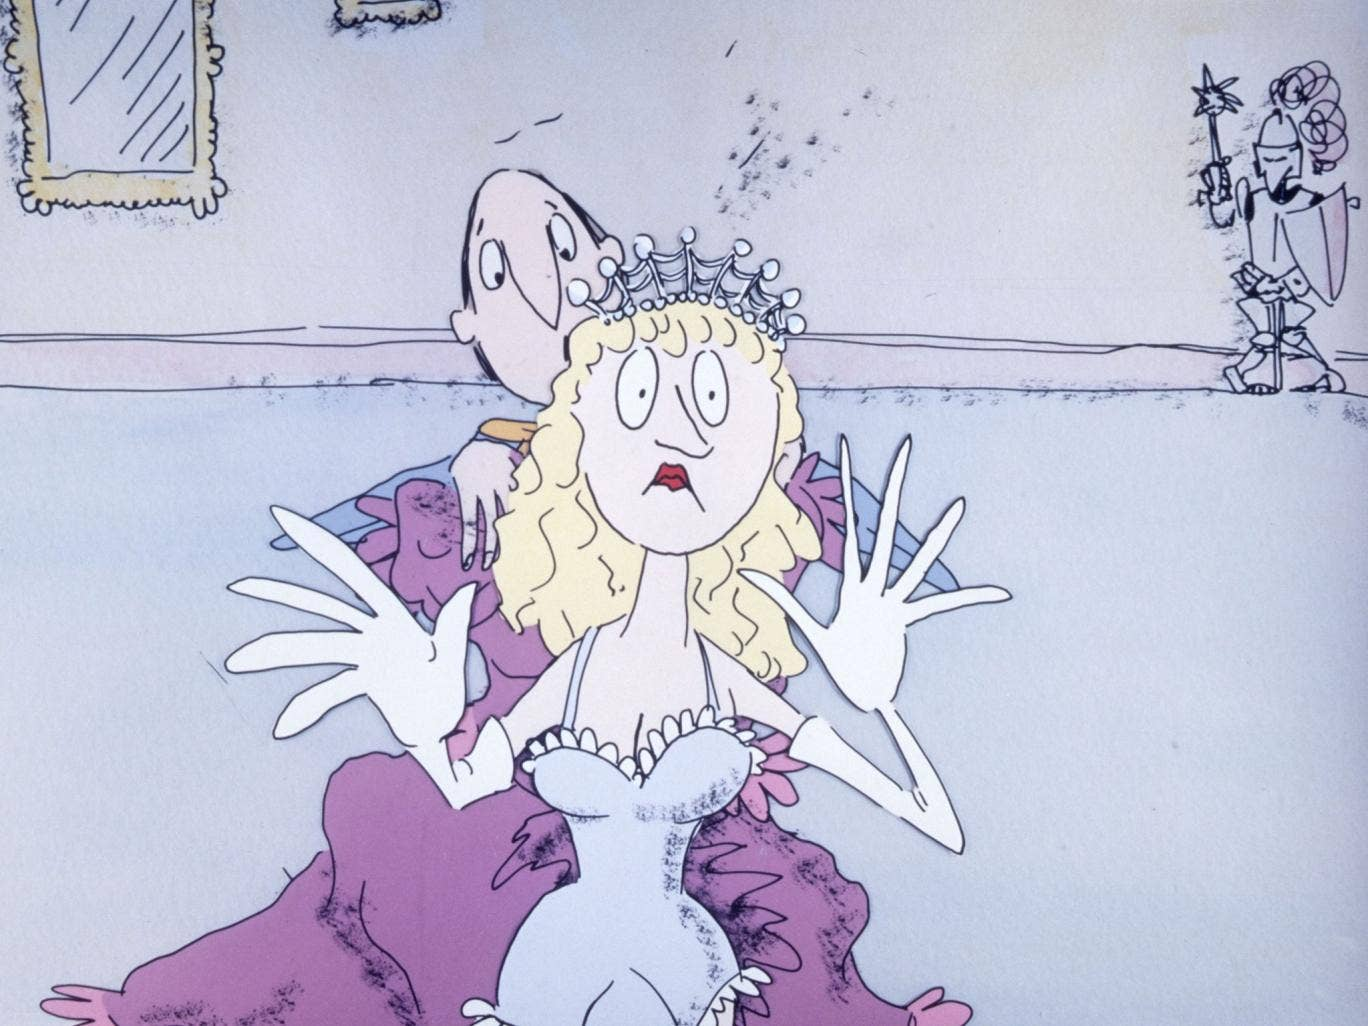 A still from ITV's 'Revolting Rhymes and Dirty Beasts' animation based on Quentin Blake's original illustrations